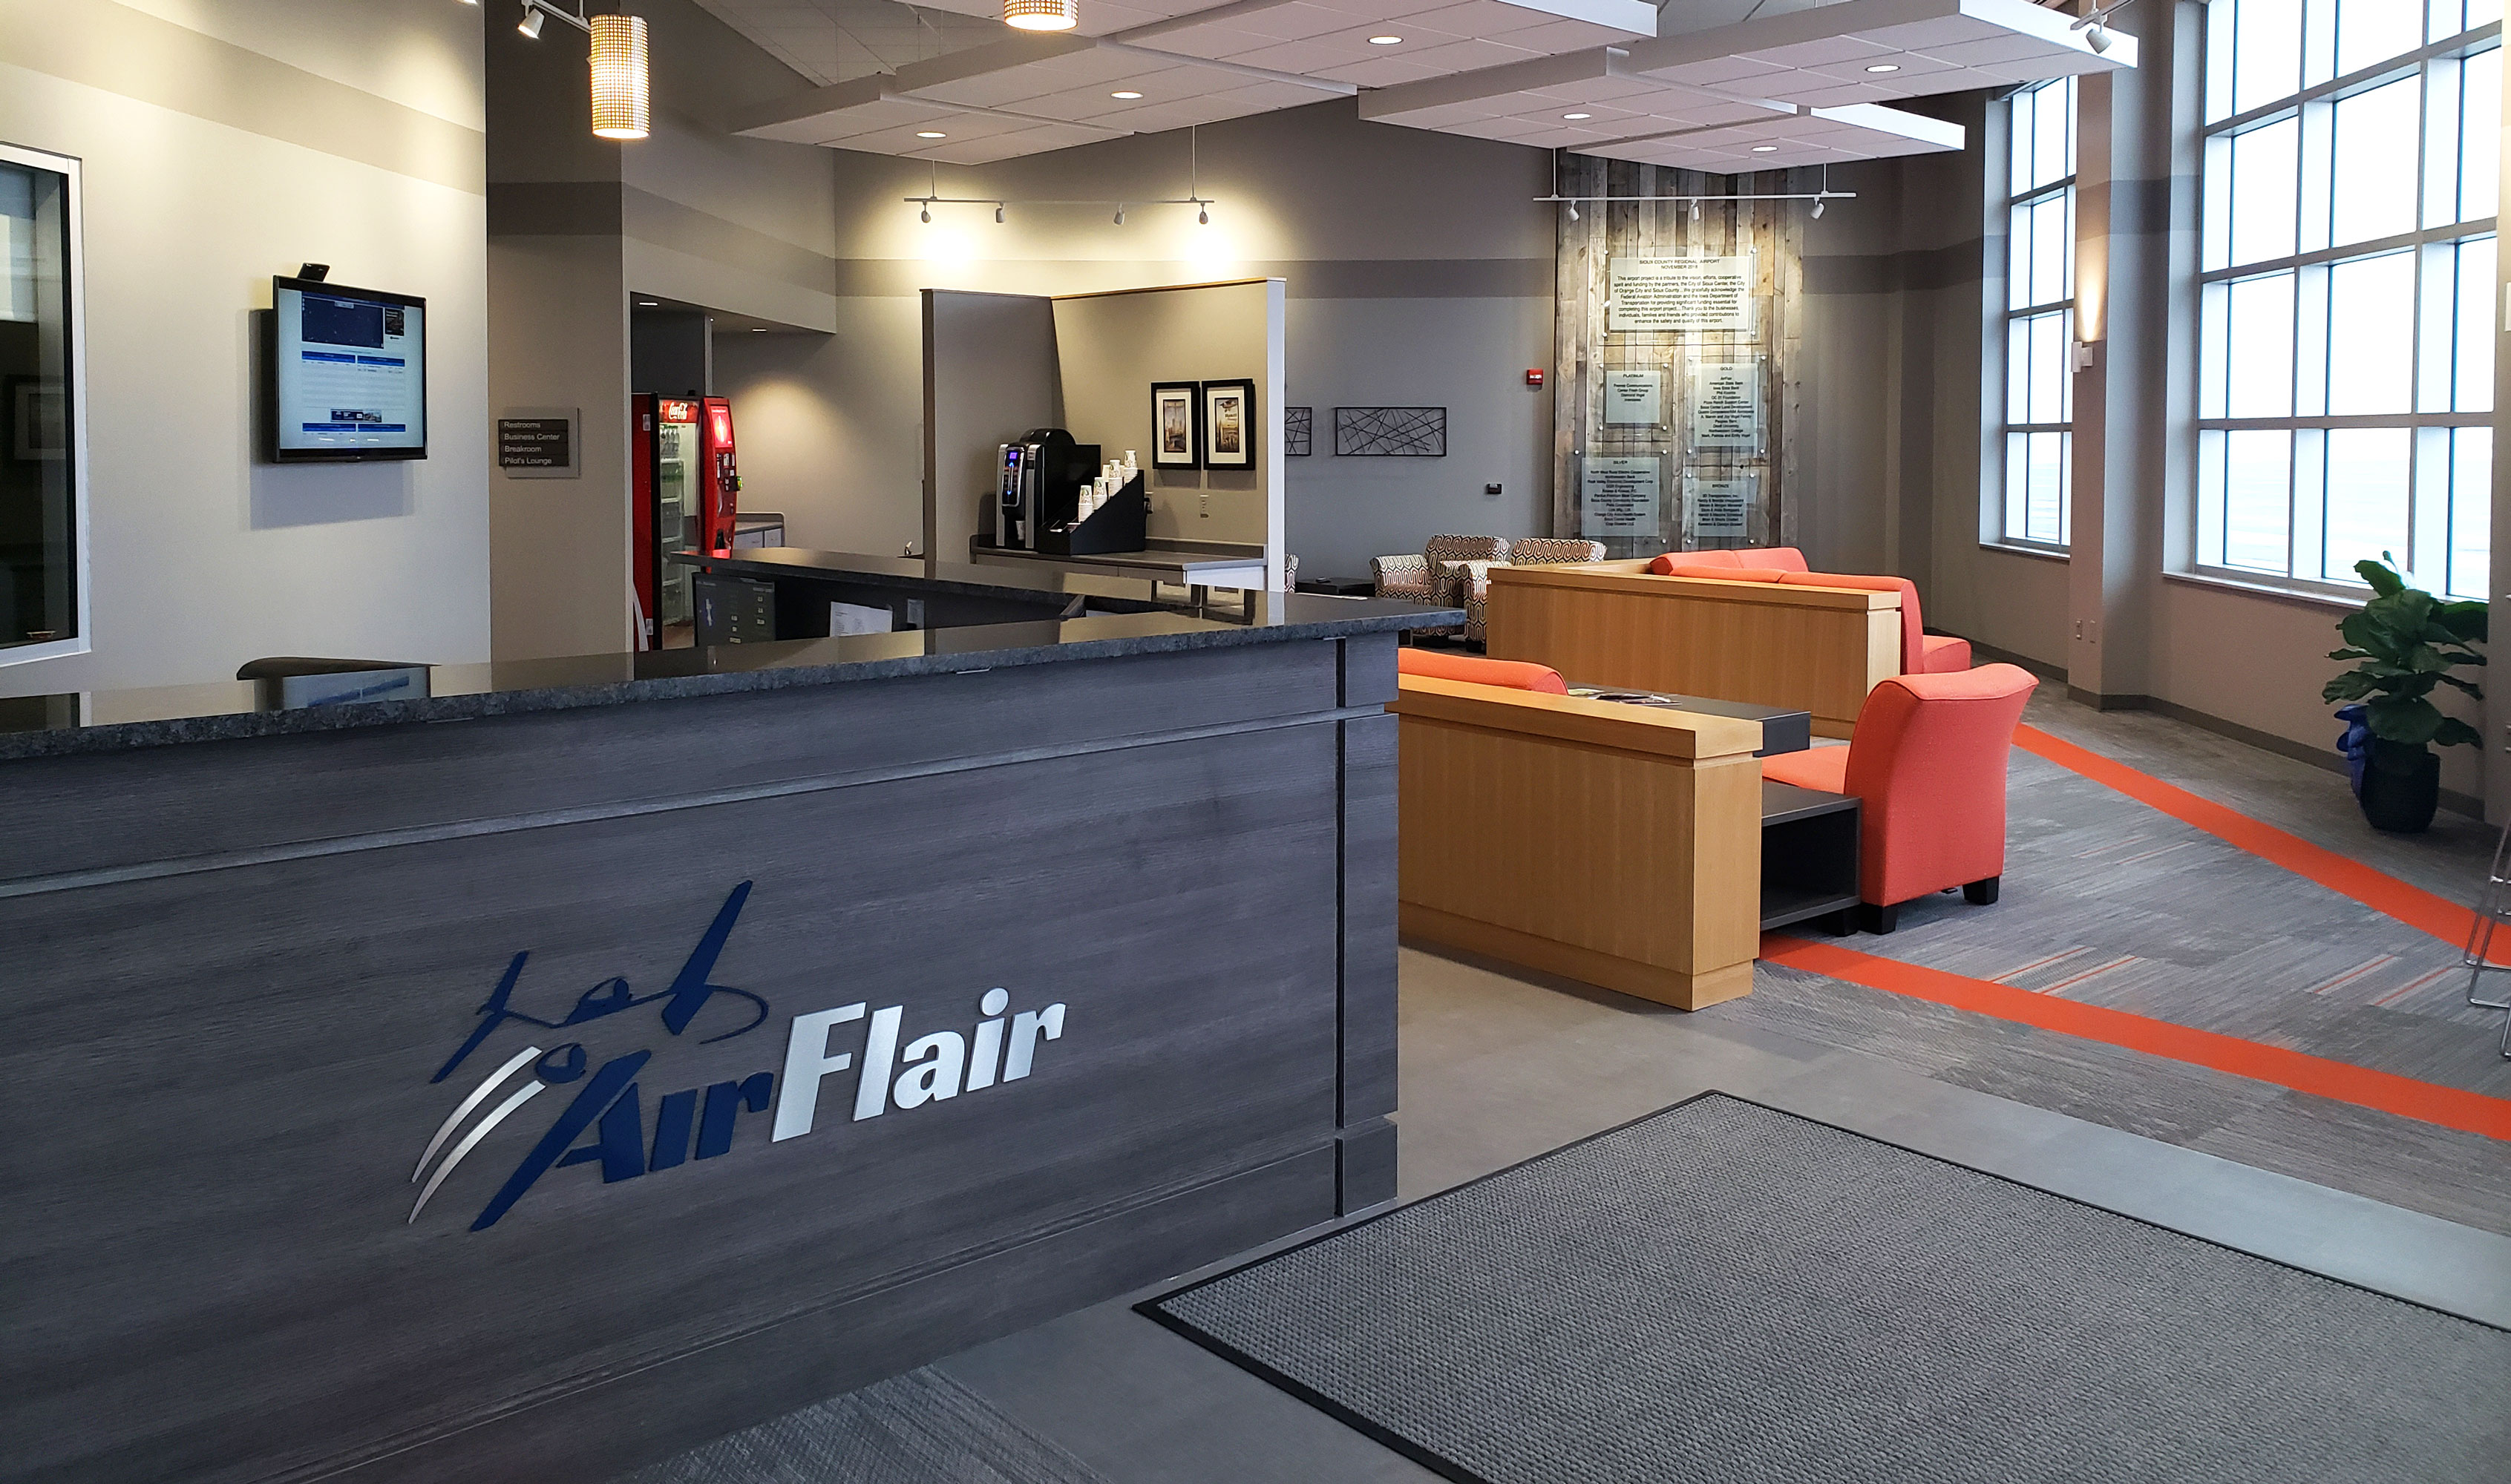 Air Flair lobby